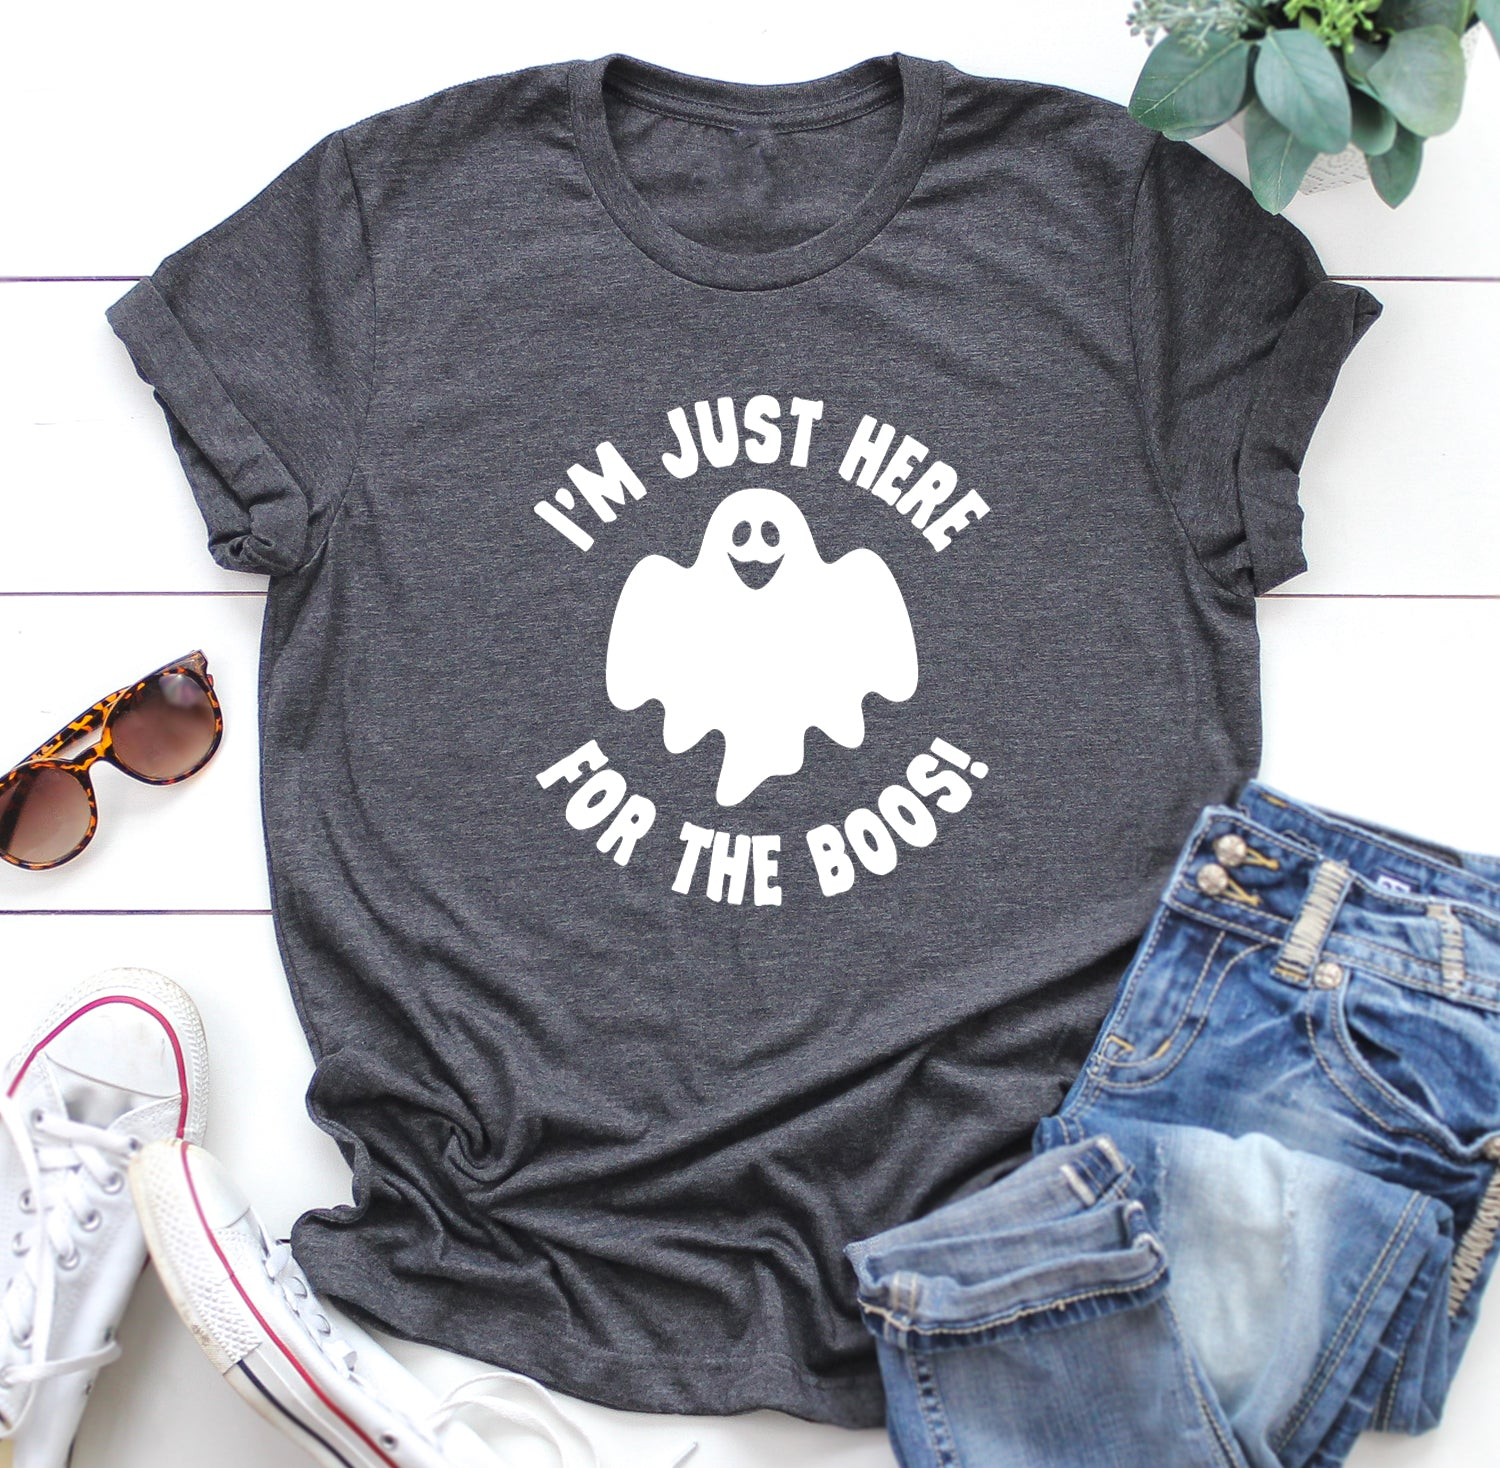 I'm Just Here for the Boos Unisex Shirt. Funny Halloween Shirt. Wine Shirt. Halloween Costume. Dtinking Shirt. Boos Shirt. Best Friends